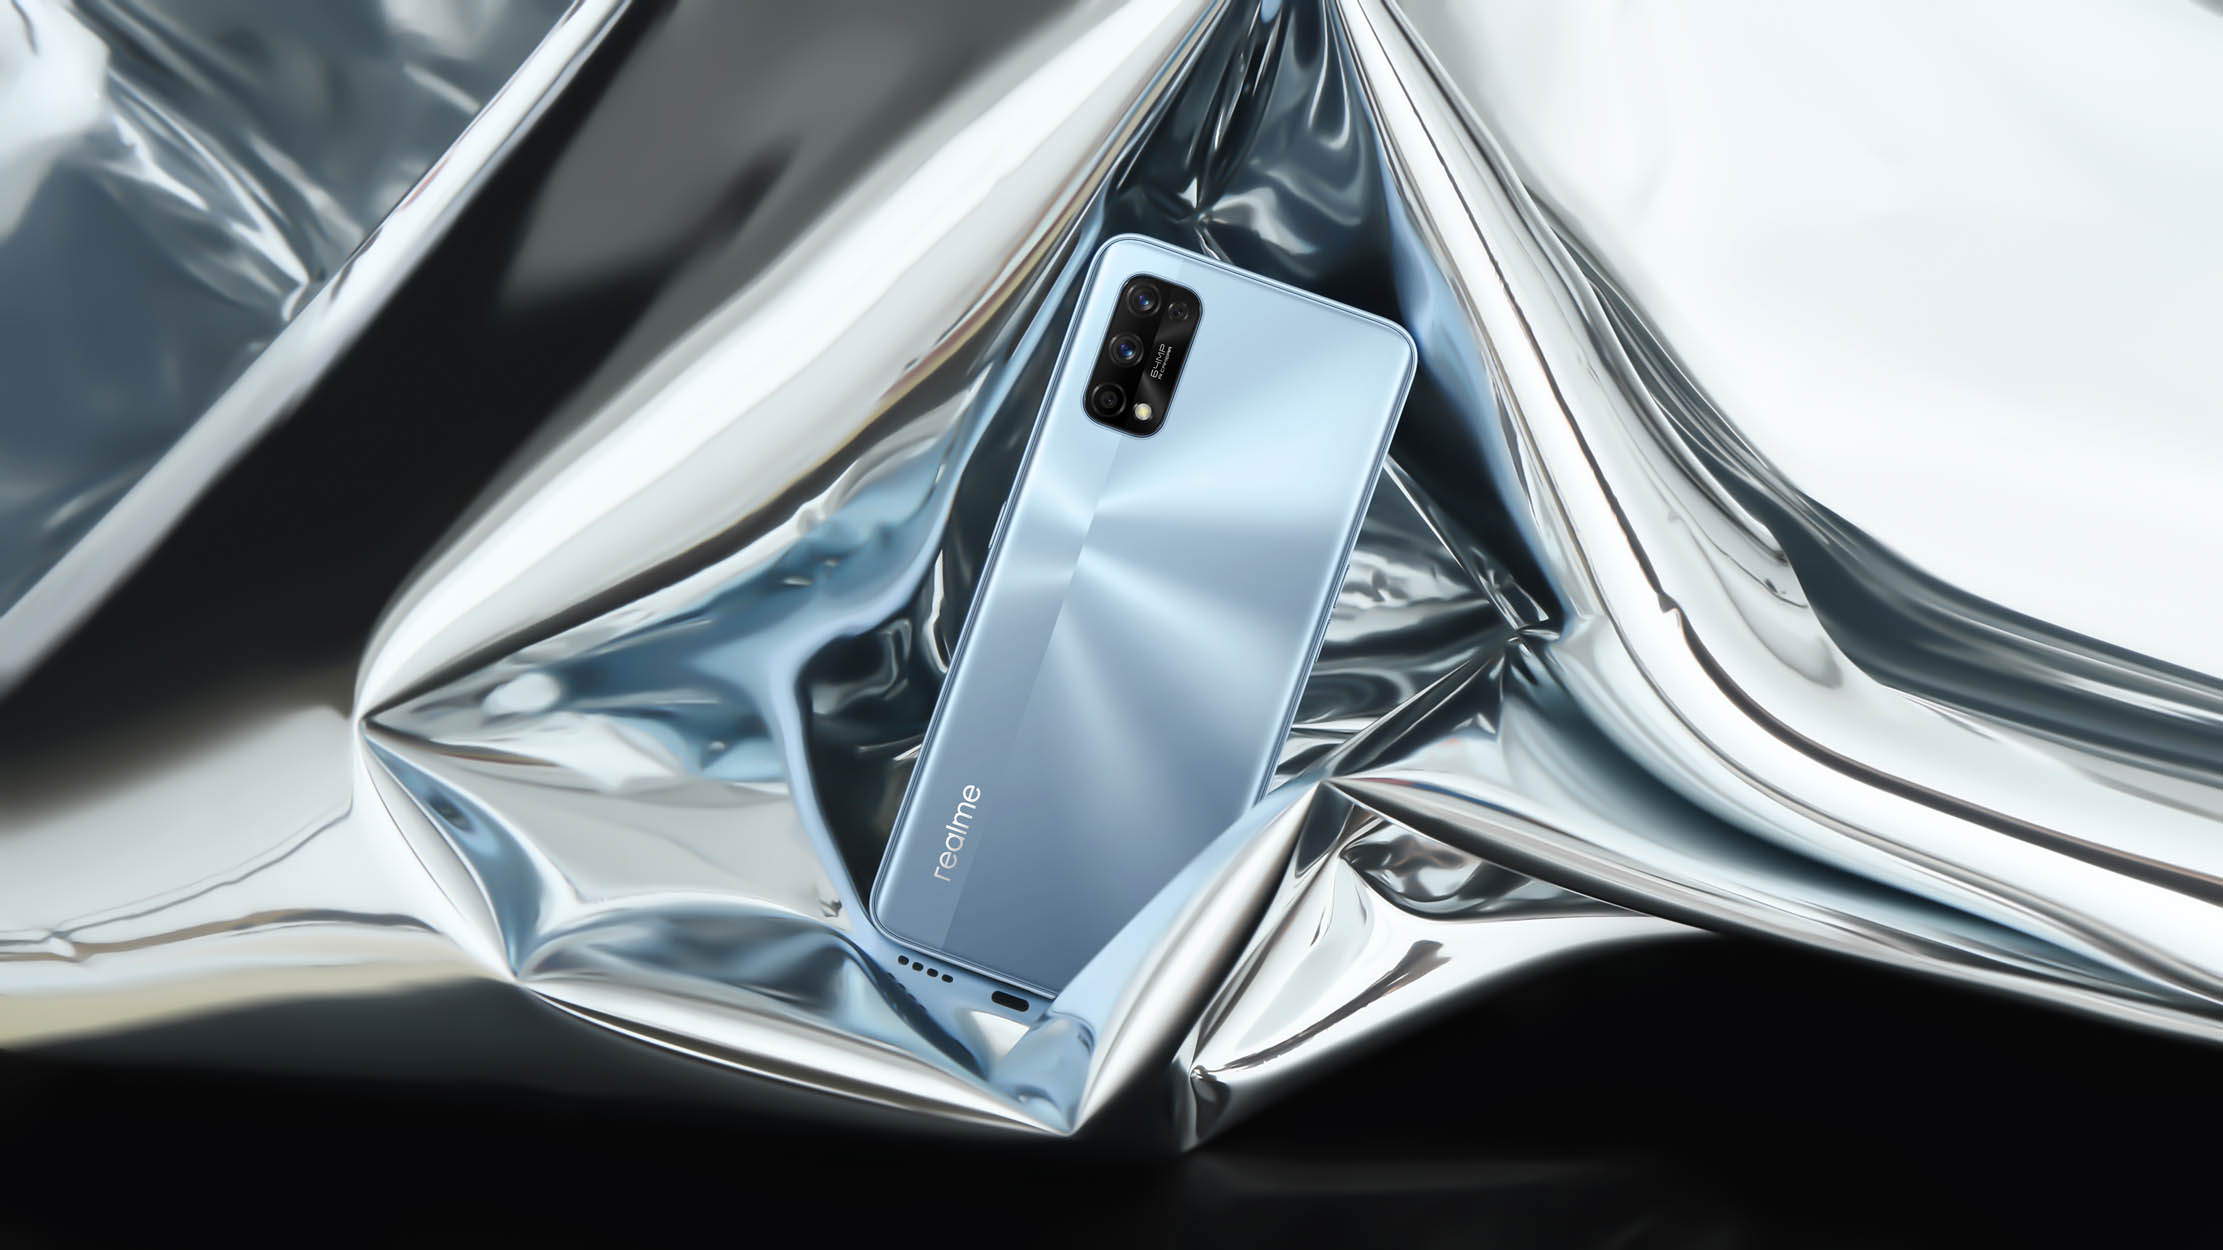 realme 7 pro - affordable Android phones